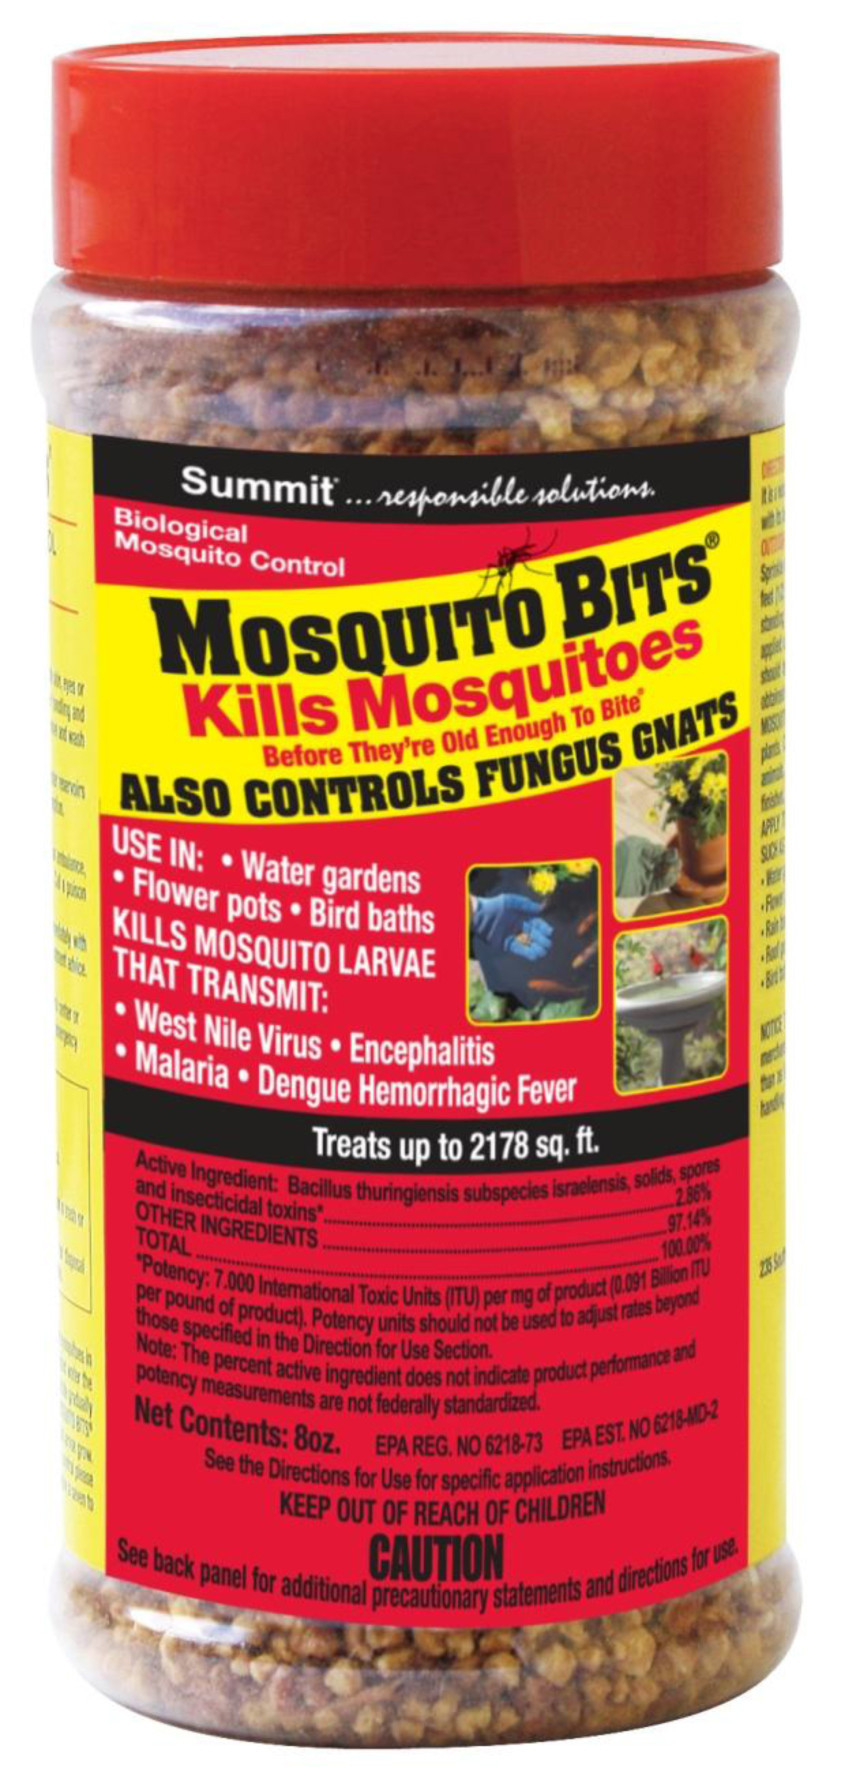 Fungus Gnats: Mosquito Bits Also Control Unwanted Pests In